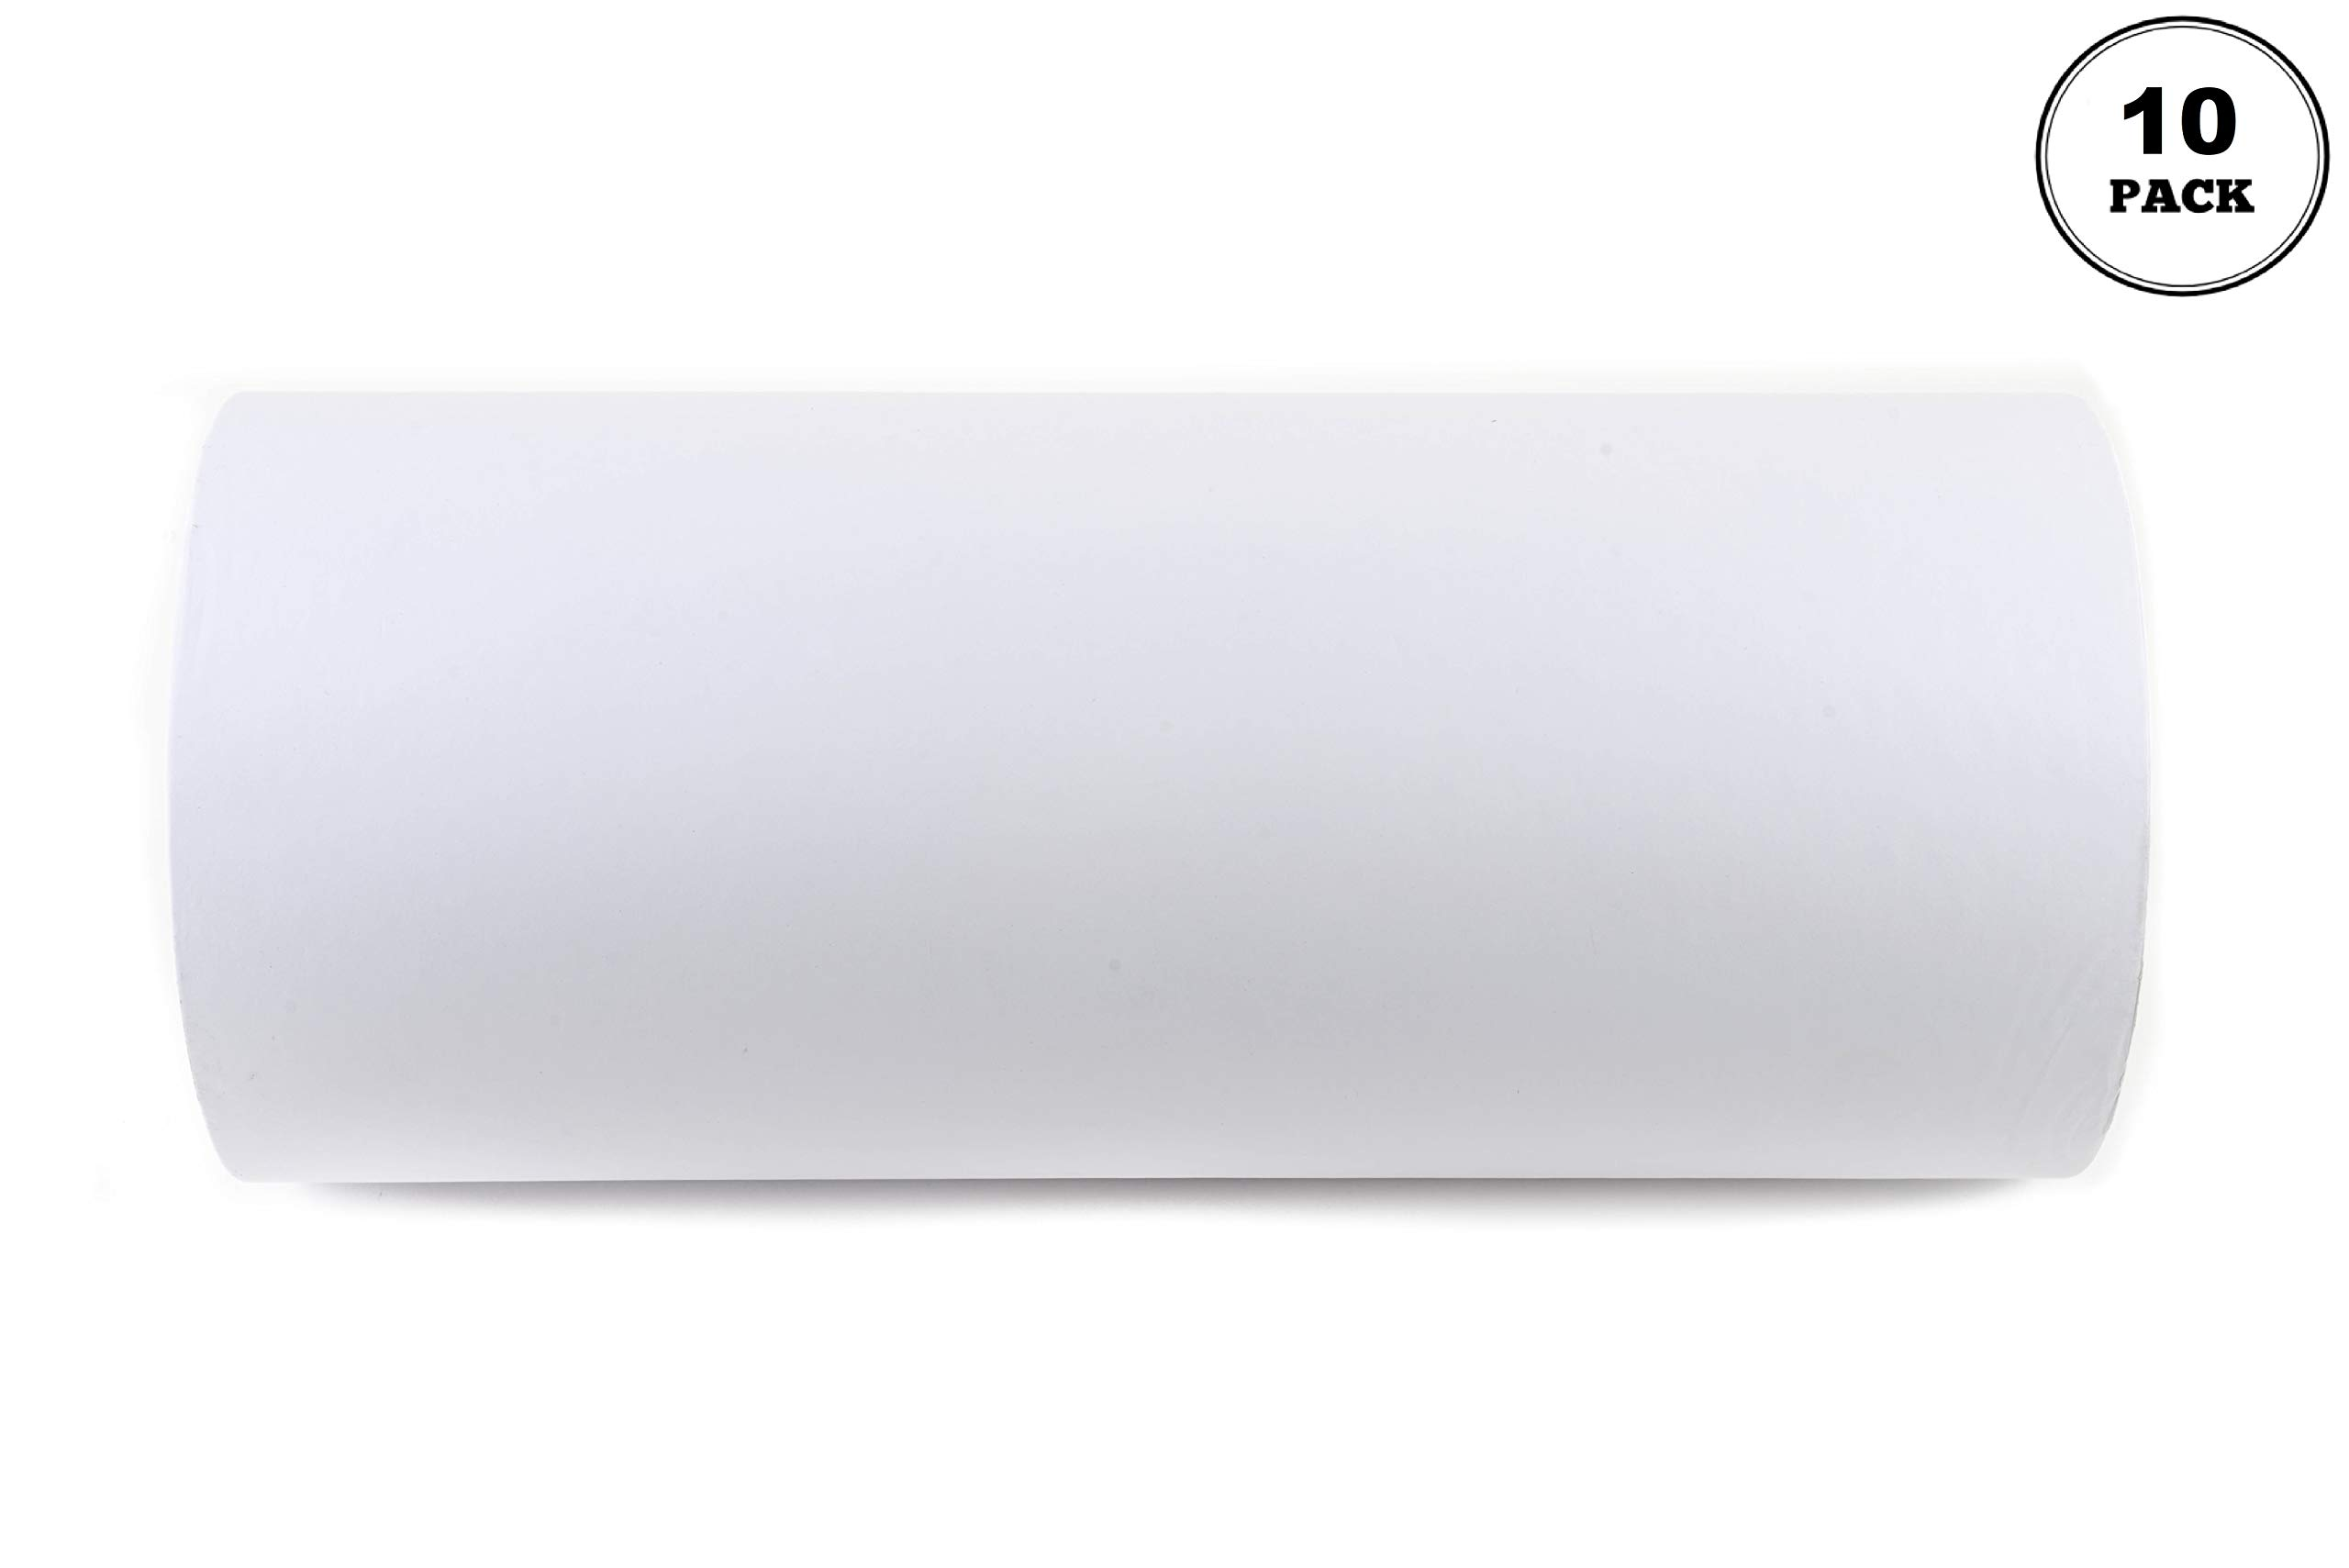 [10 Pack] EcoQuality Butcher Paper 15'' x 1000 ft - Roll for Butcher, Freezer Paper Great for Restaurants, Food Service, Butcher Paper, Meat Paper, Freezer Roll, Butcher Roll, MG15